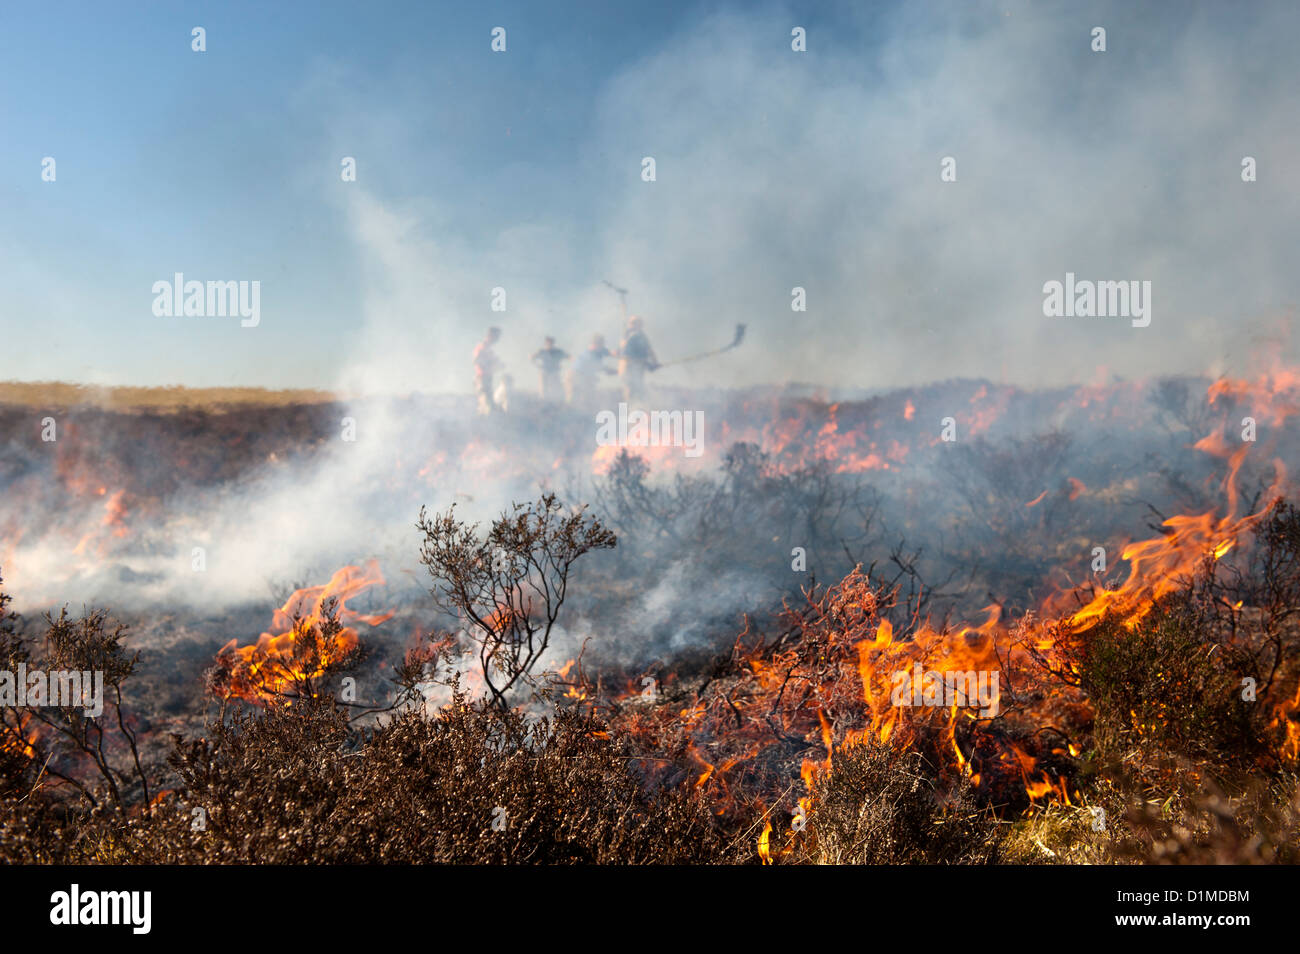 Firemen attemting to control a heather moor burning which had started to blaze out of control, Cumbria, England. - Stock Image